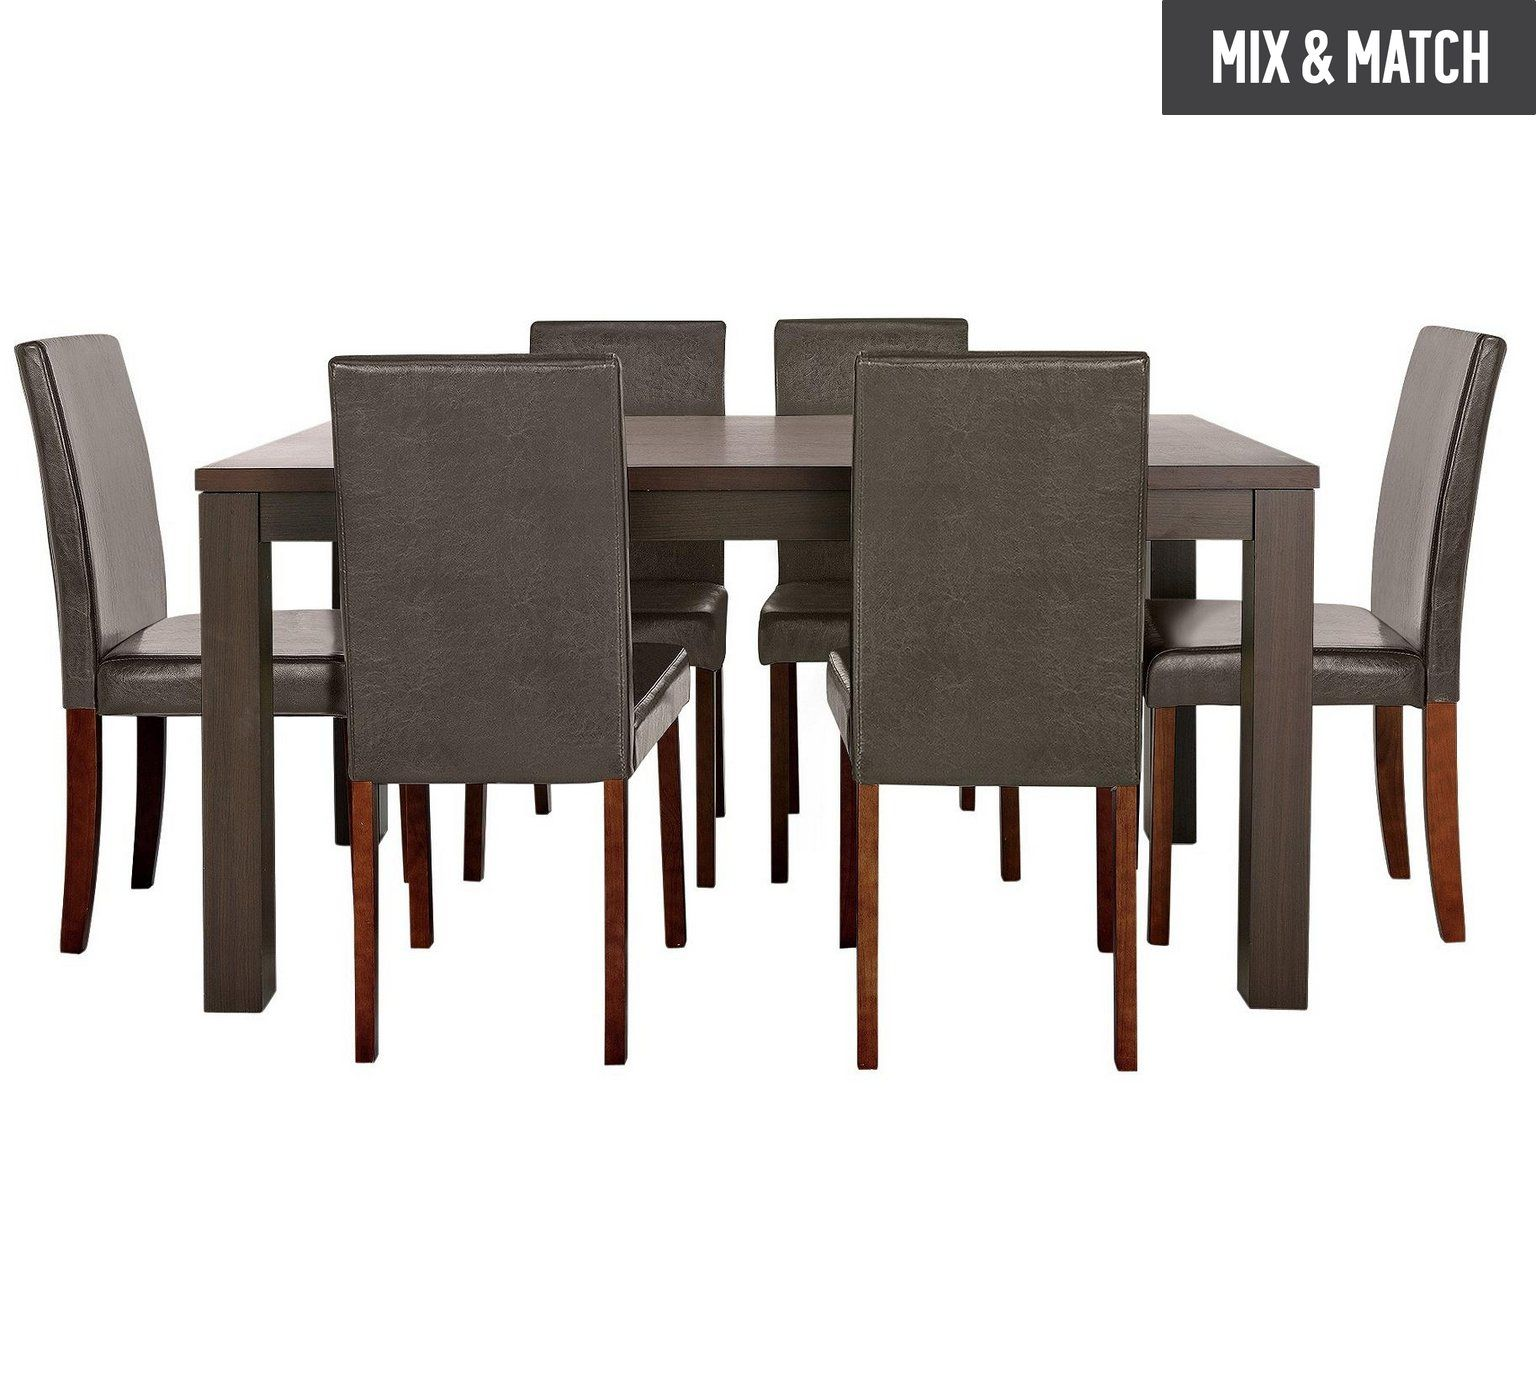 Argos Uk Dining Table And Chairs: Buy HOME Pemberton Oak Veneer Dining Table & 6 Chairs